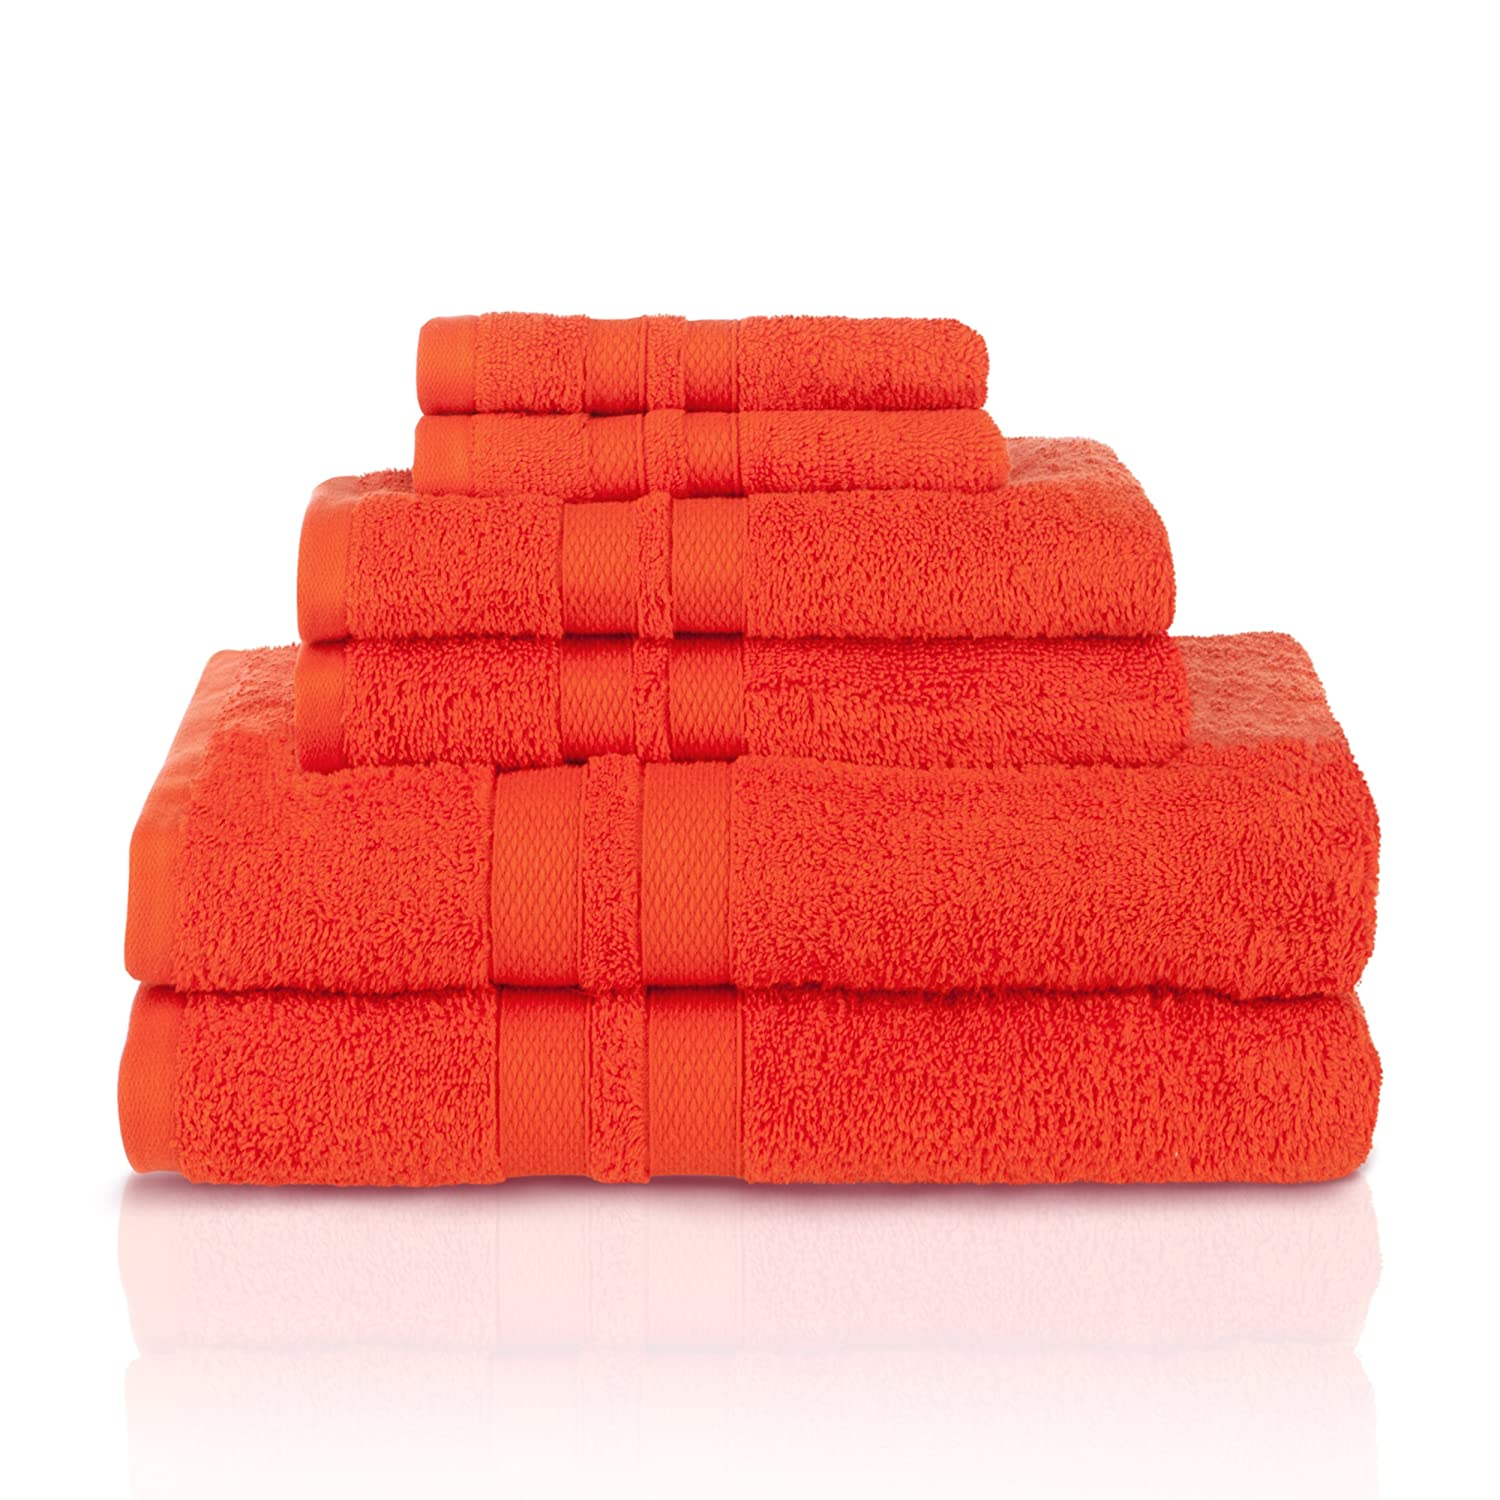 100% Premium Cotton 6 Piece Towel Set